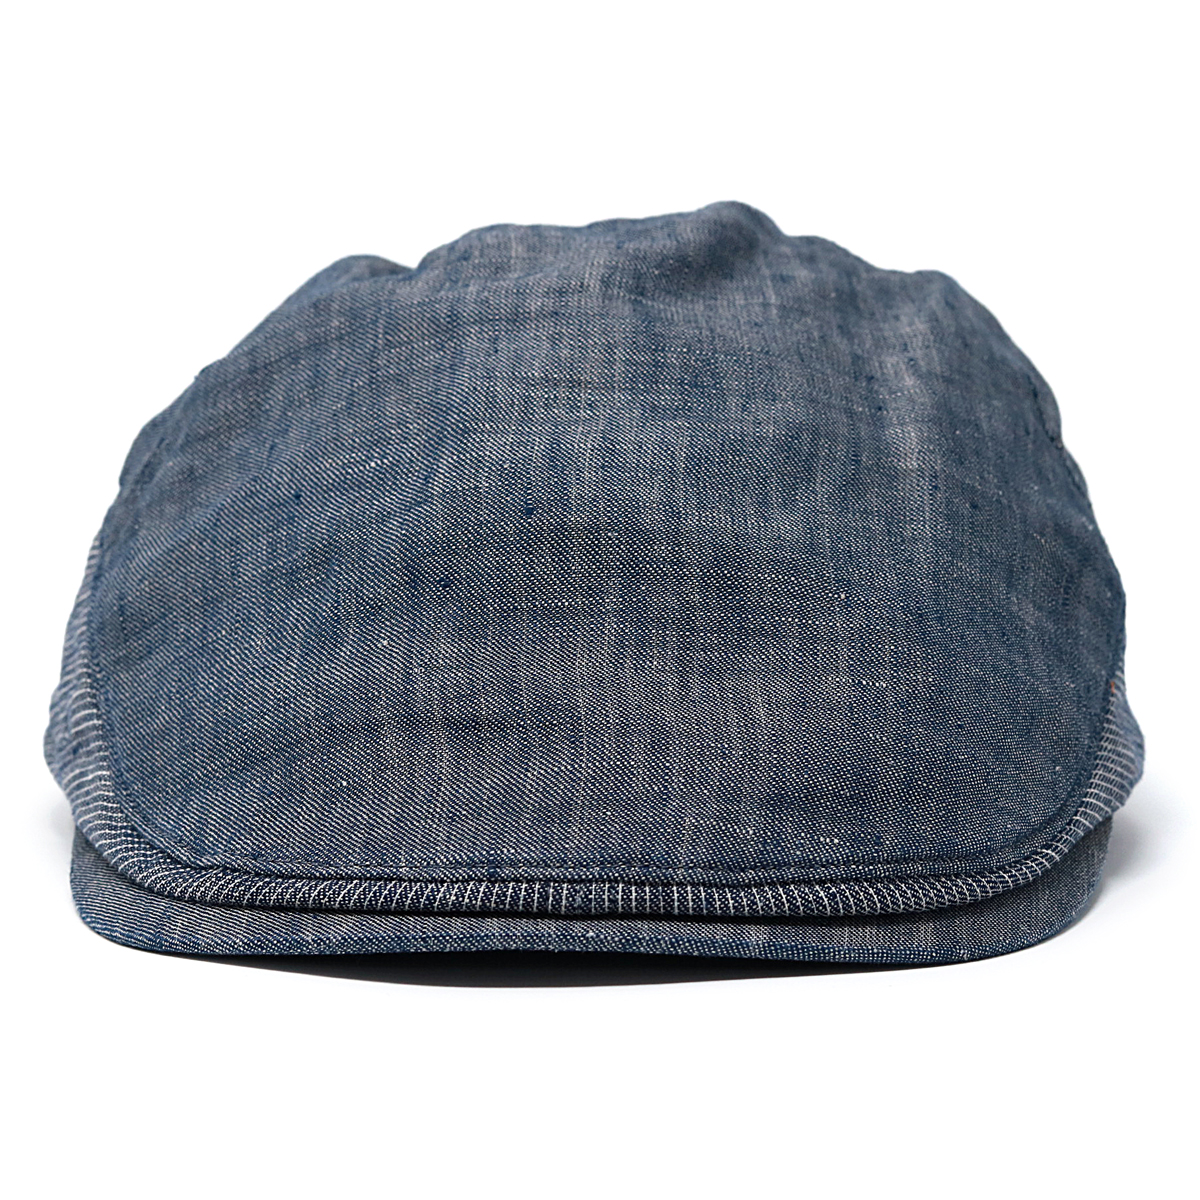 Elehelm Hat Store It Is A Gift Present Hat Mail Order In